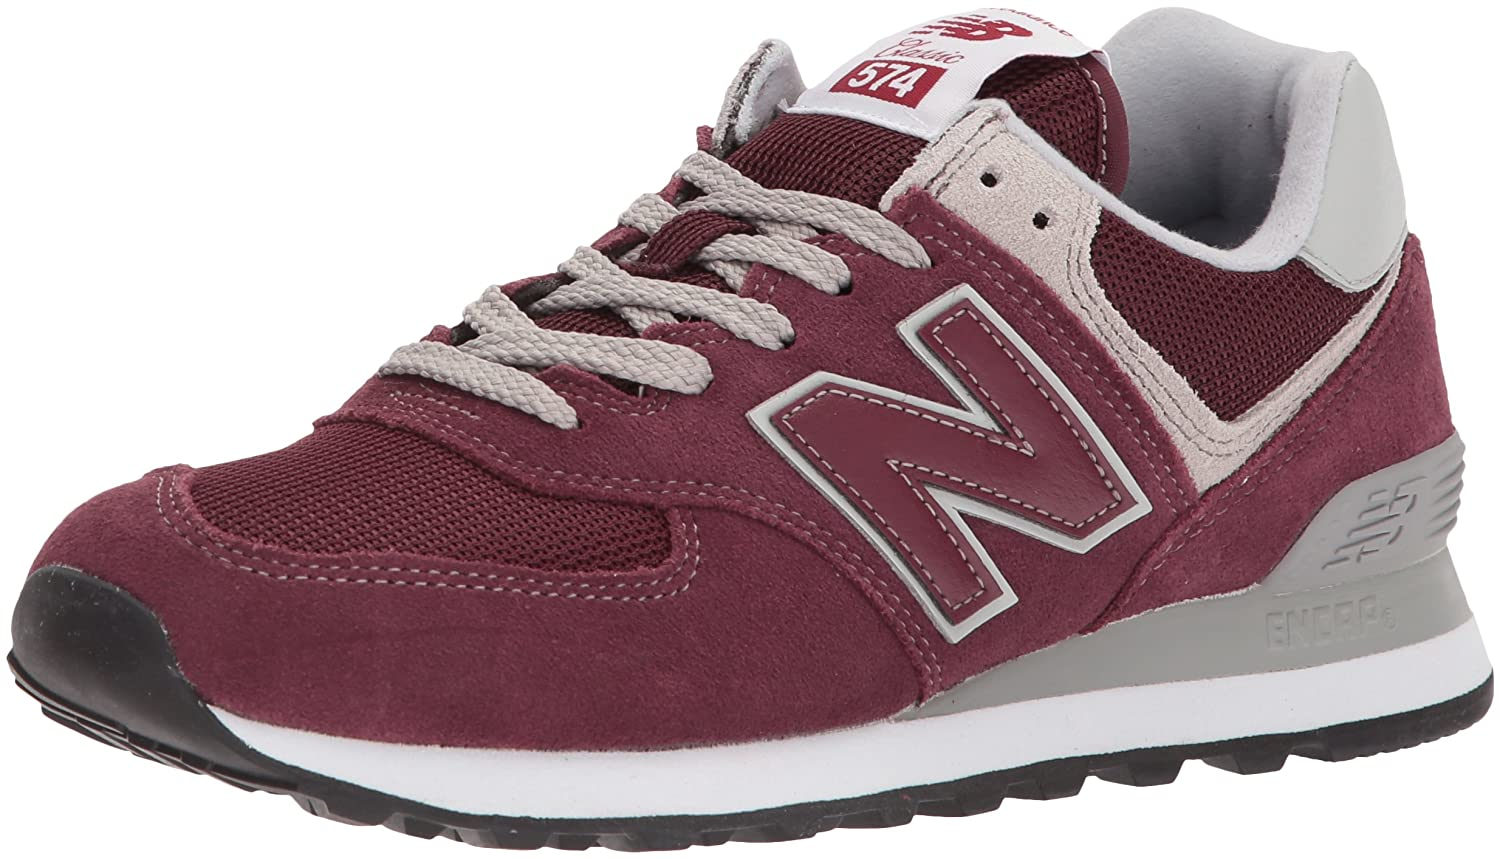 New Balance Women's Iconic 574 Sneaker B072FQSNHY 9.5 D US|Burgundy